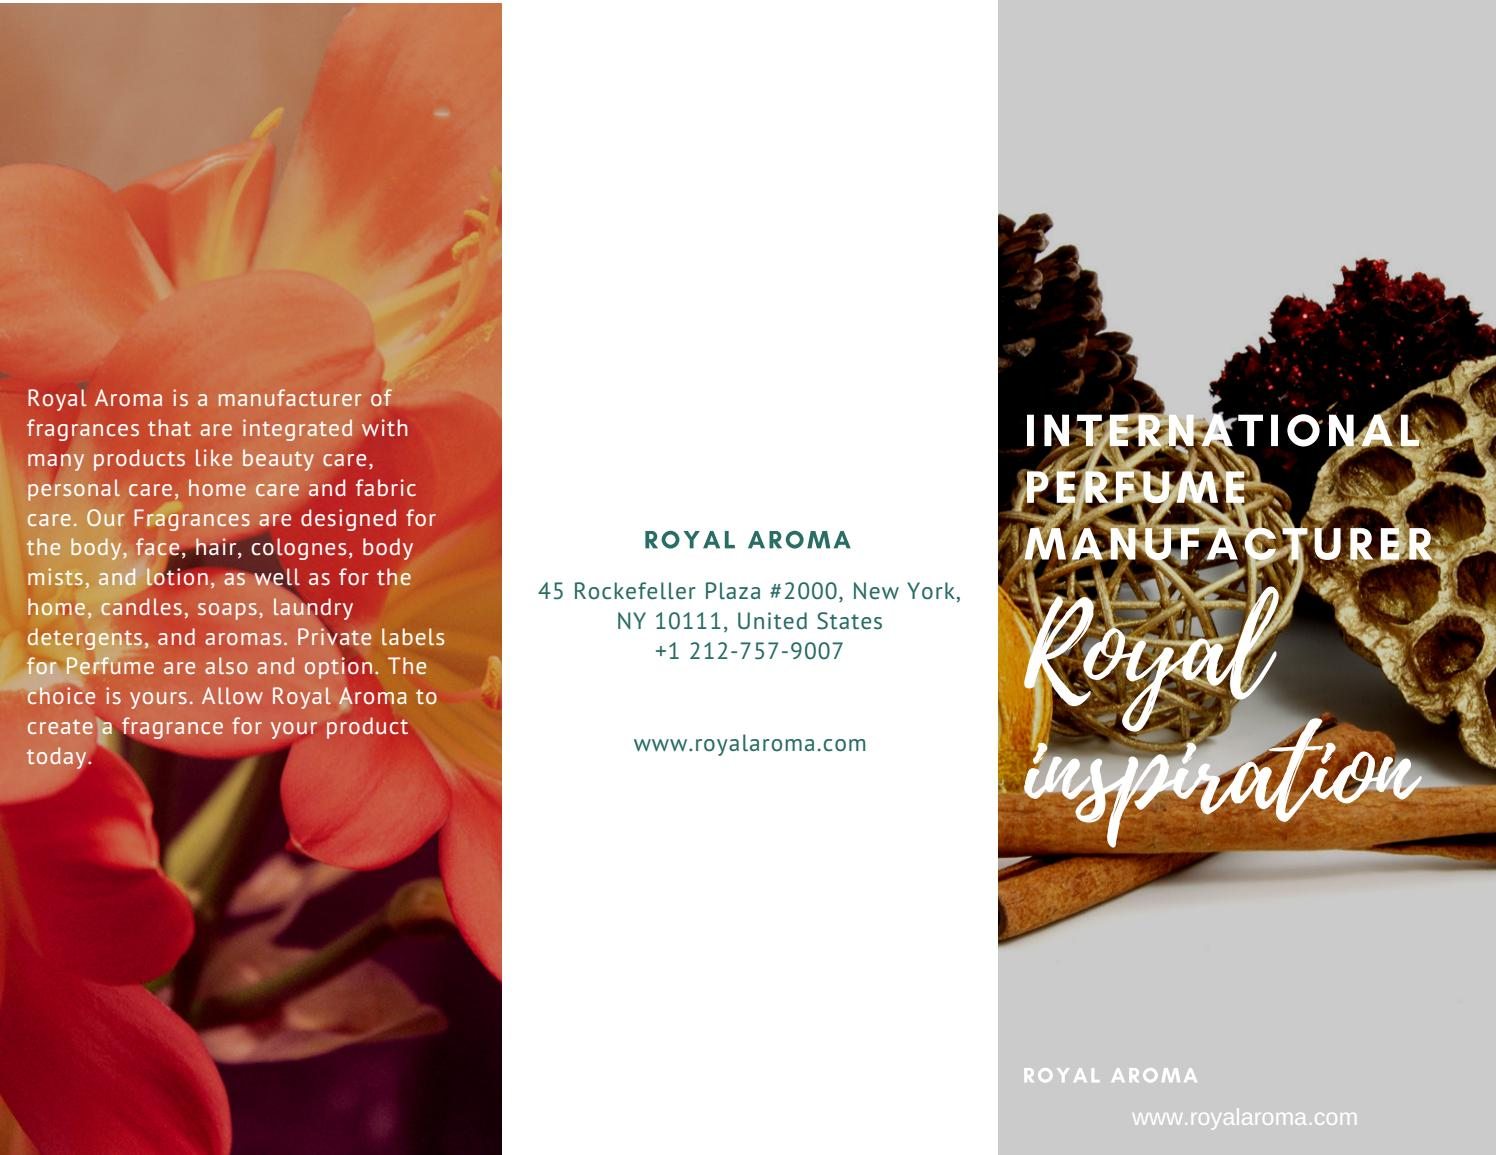 Perfume manufacturer in usa by www royalaroma com - issuu